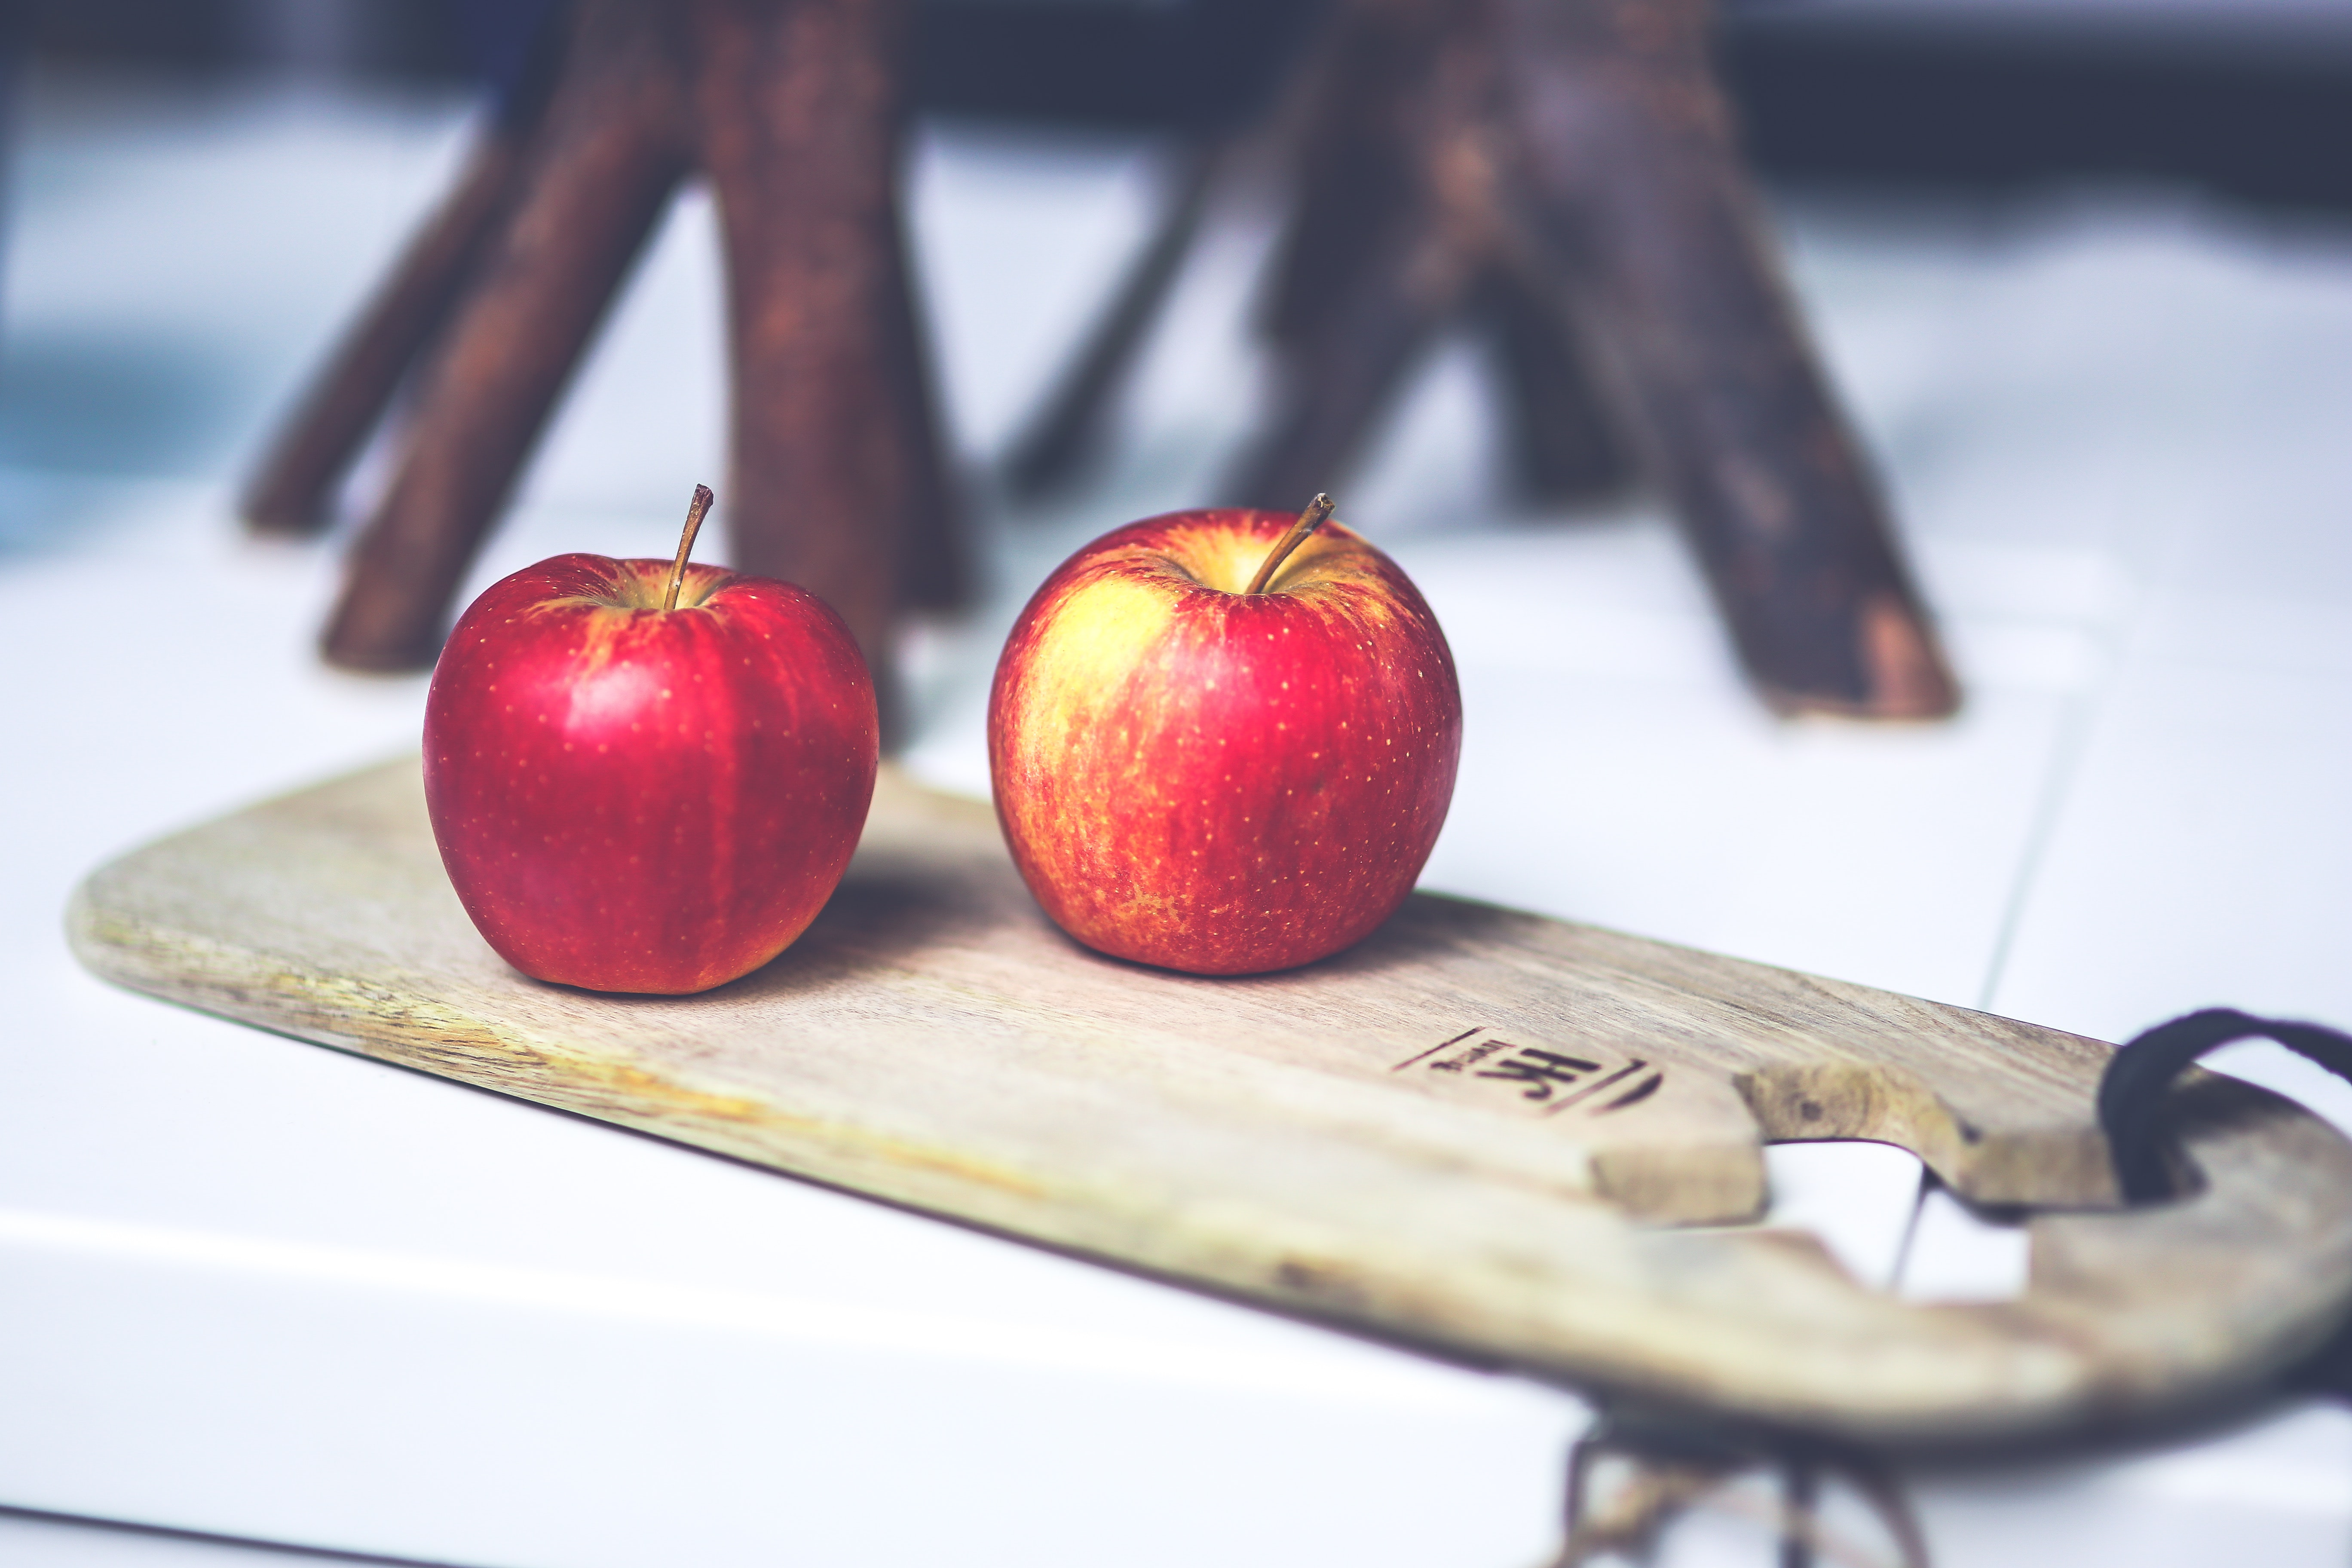 Two apples on the board, Apple, Knife, Wood, Taste, HQ Photo